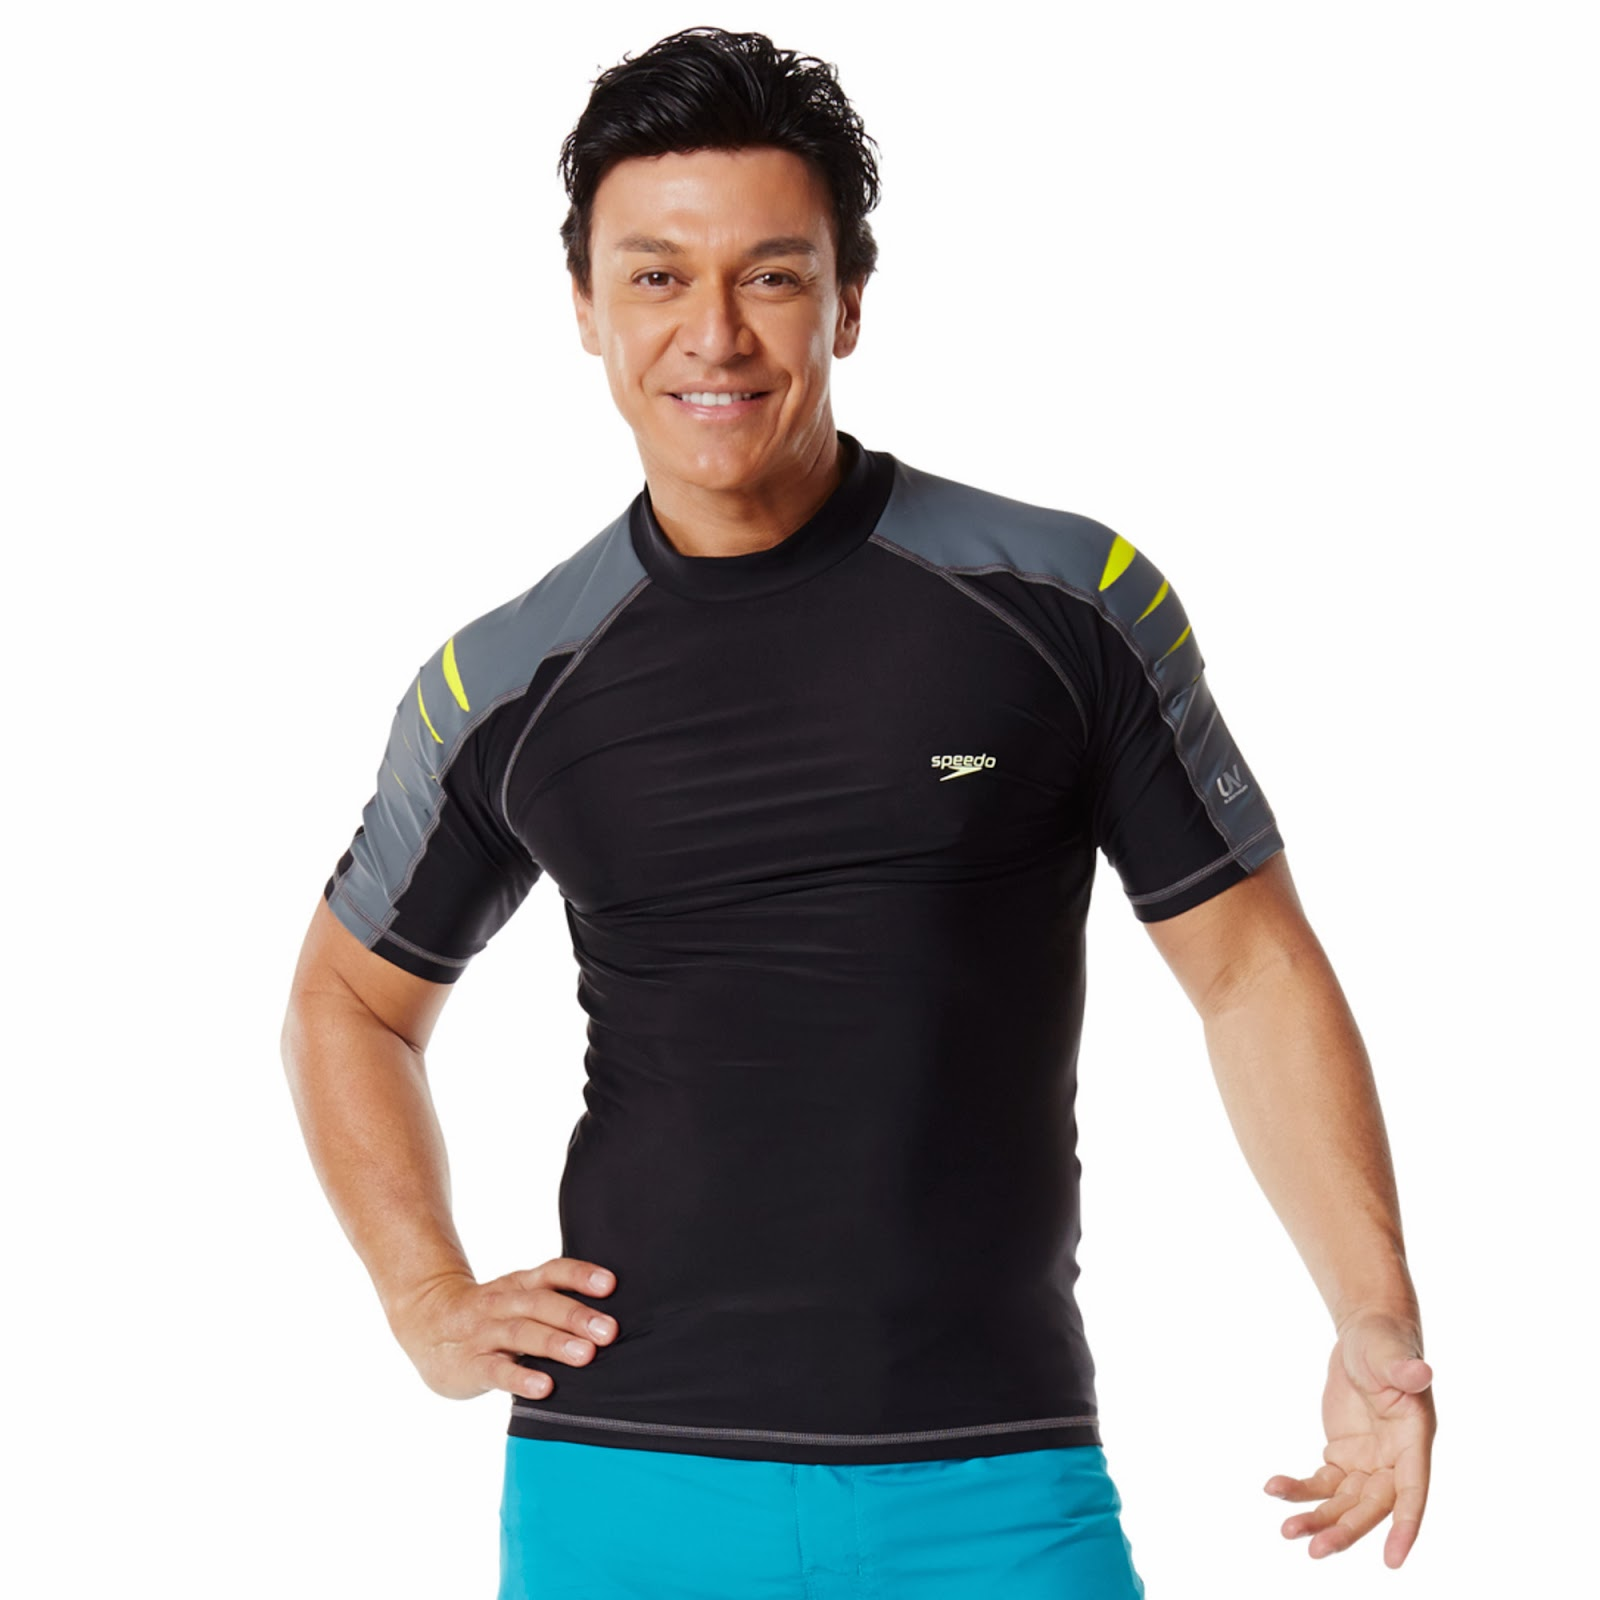 http://www.zumba.com/en-US/store-zin/US/product/cut-up-over-you-rashguard?color=Black#show_menu